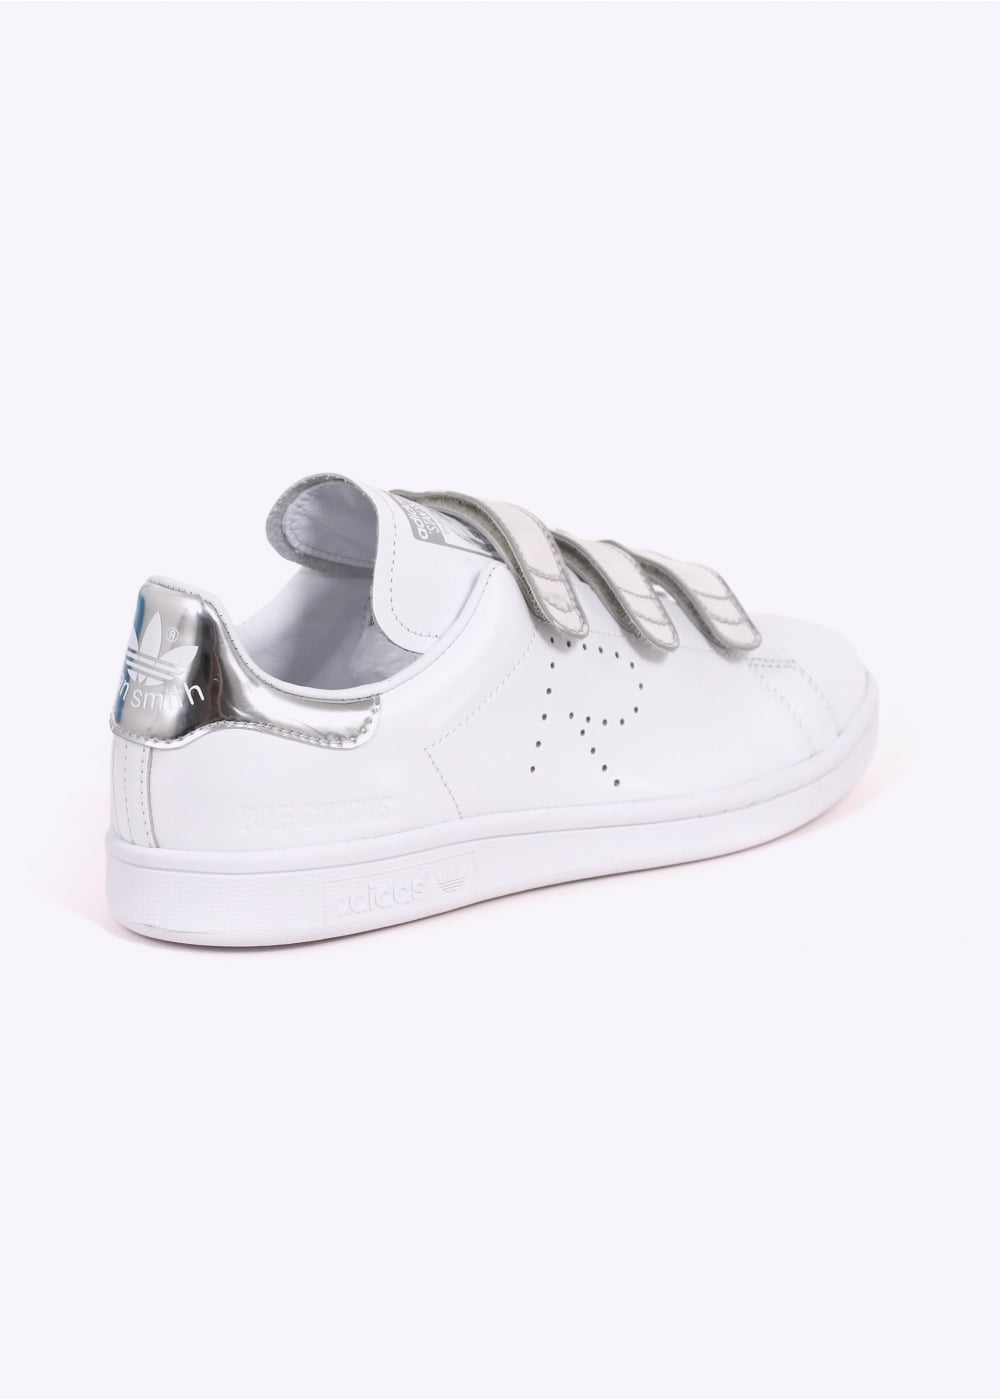 0bd08e5bb0e adidas by Raf Simons Stan Smith Comfort - White Silver - Trainers ...